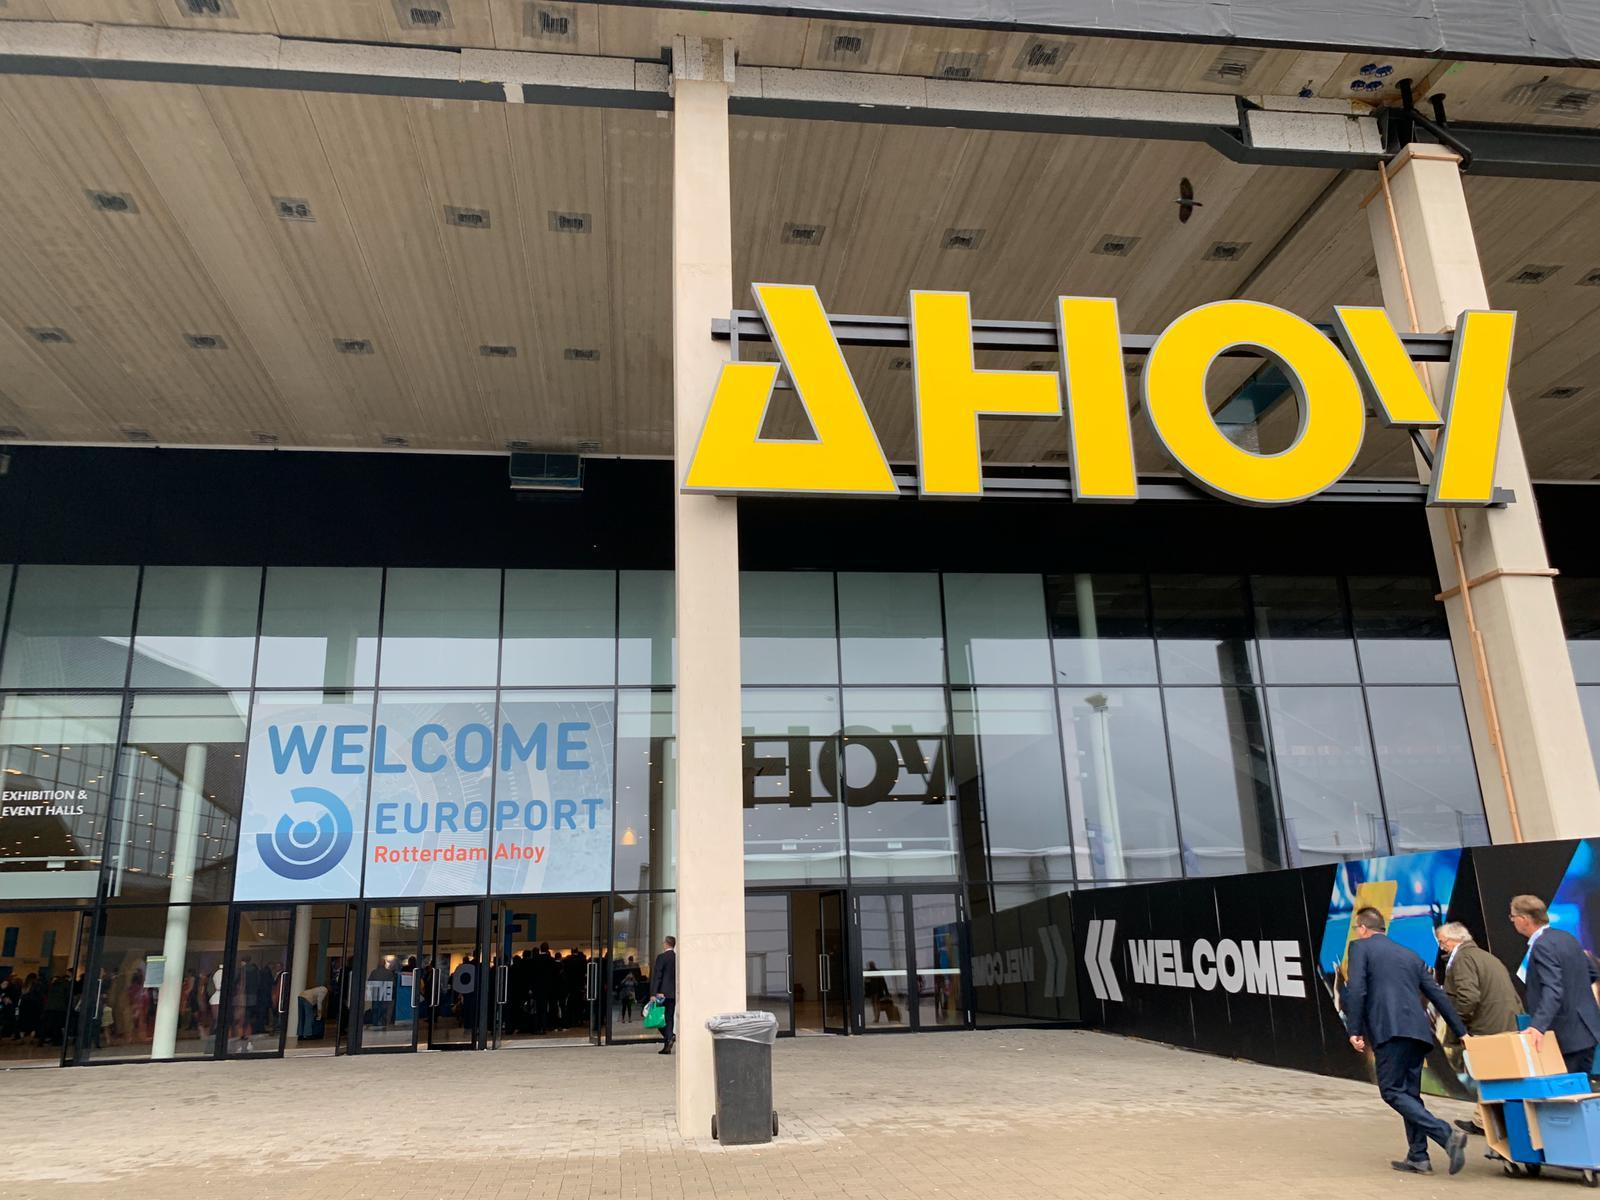 Prepare your visit to Europort